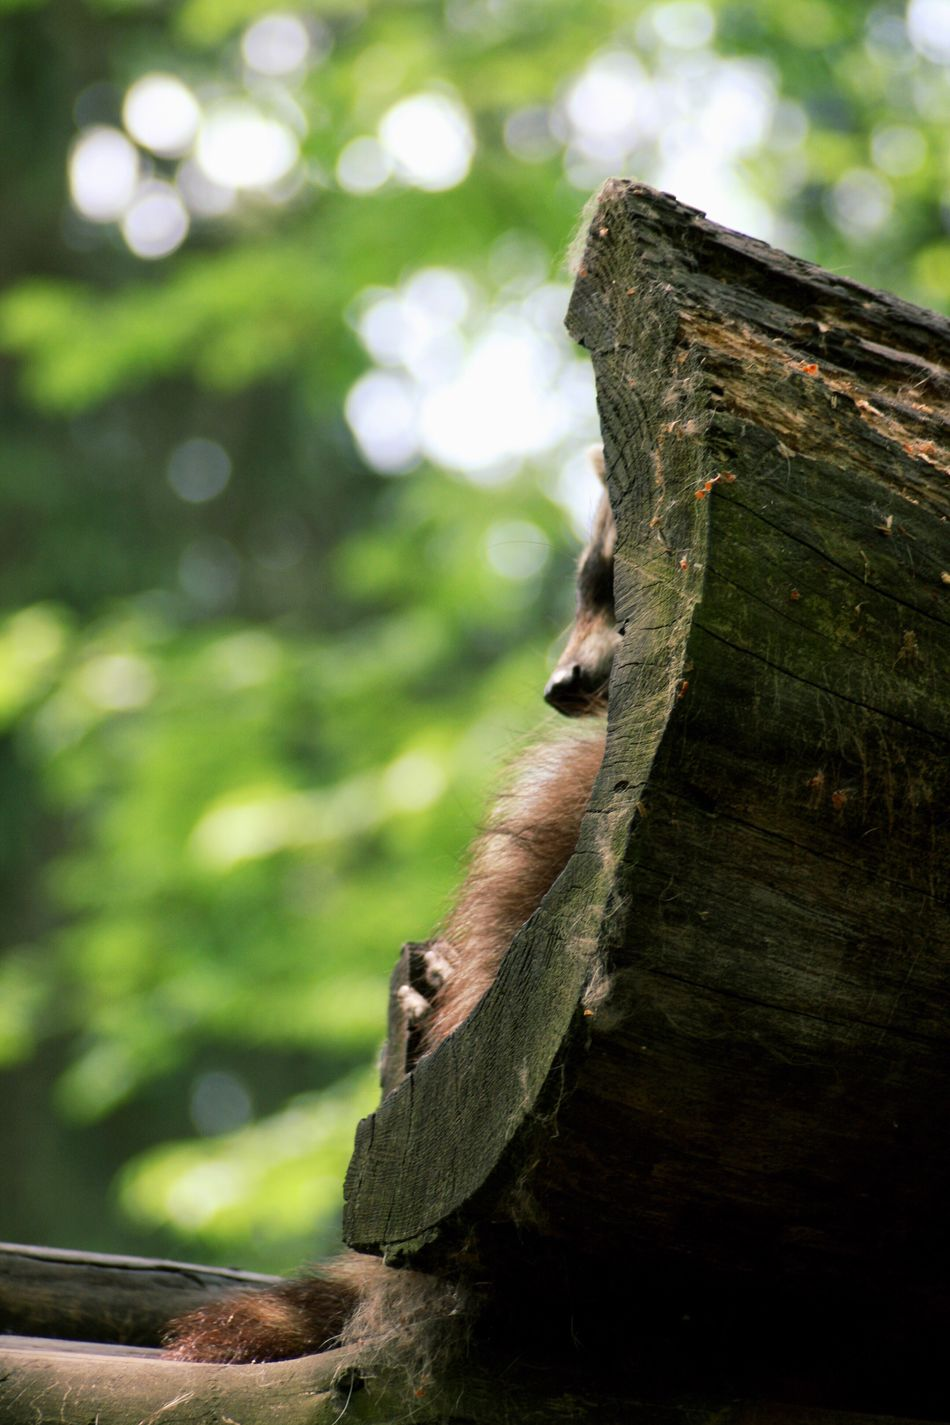 Wood - Material Tree Trunk Tree Raccon Relaxing Nature Animal Themes Log Close-up No People Day Tree Stump Outdoors One Animal Nose Canonphotography